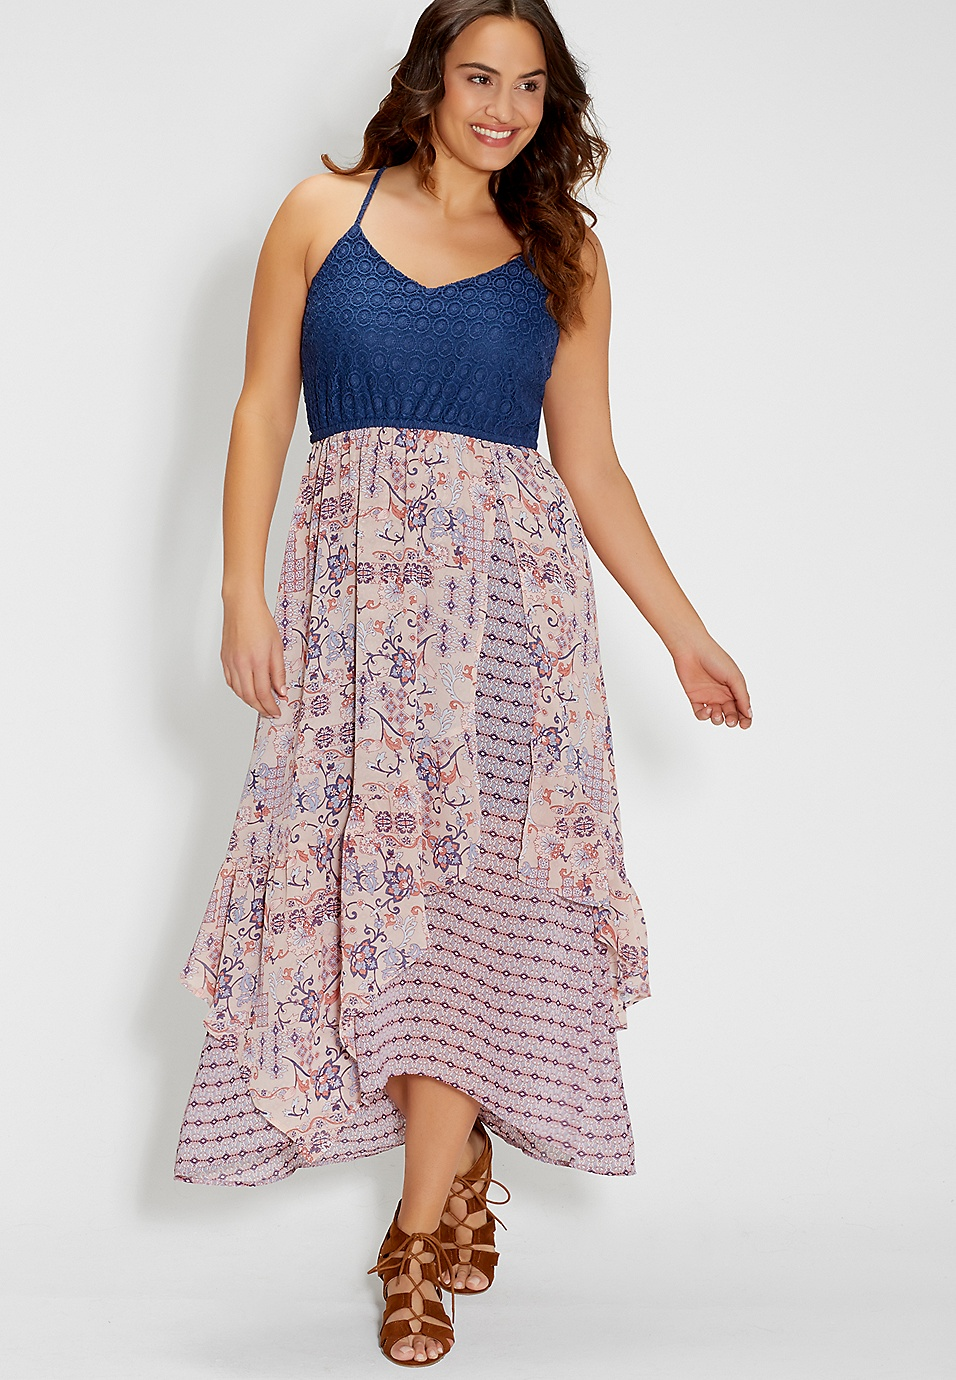 plus size dress with layered floral patterned skirt